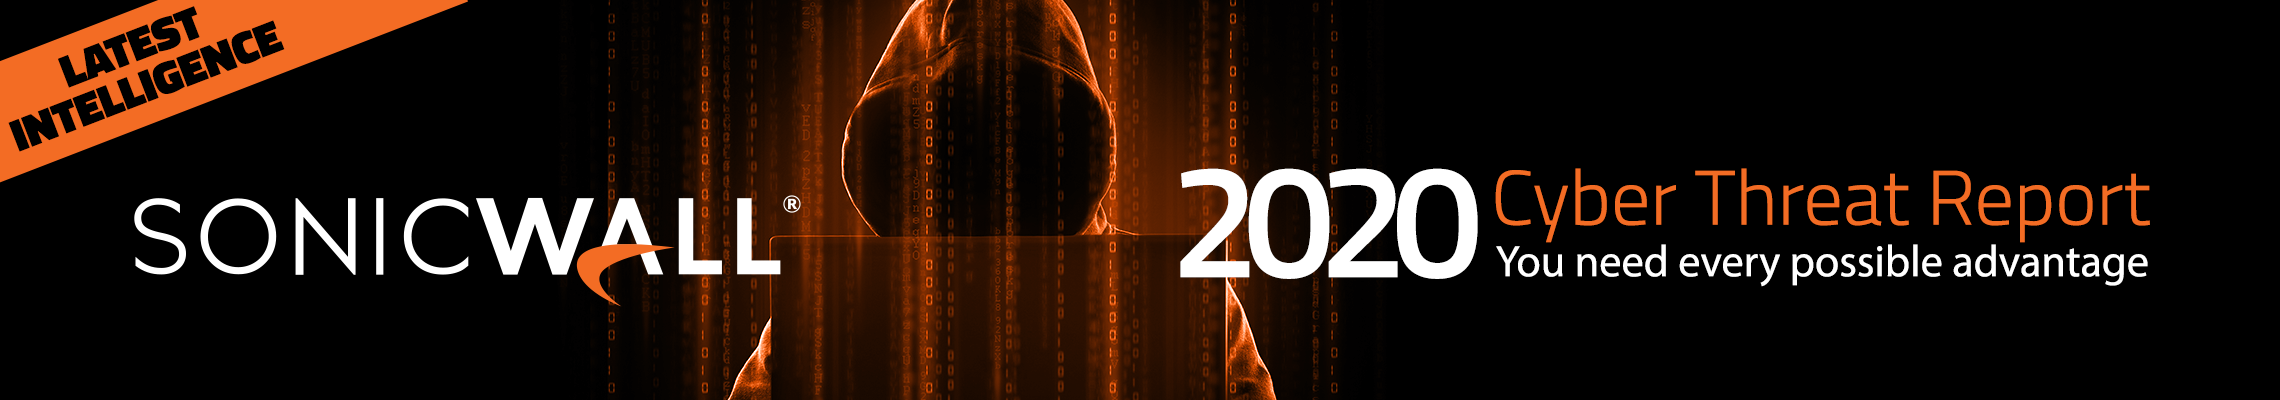 2020 SonicWall Cyber Threat Report